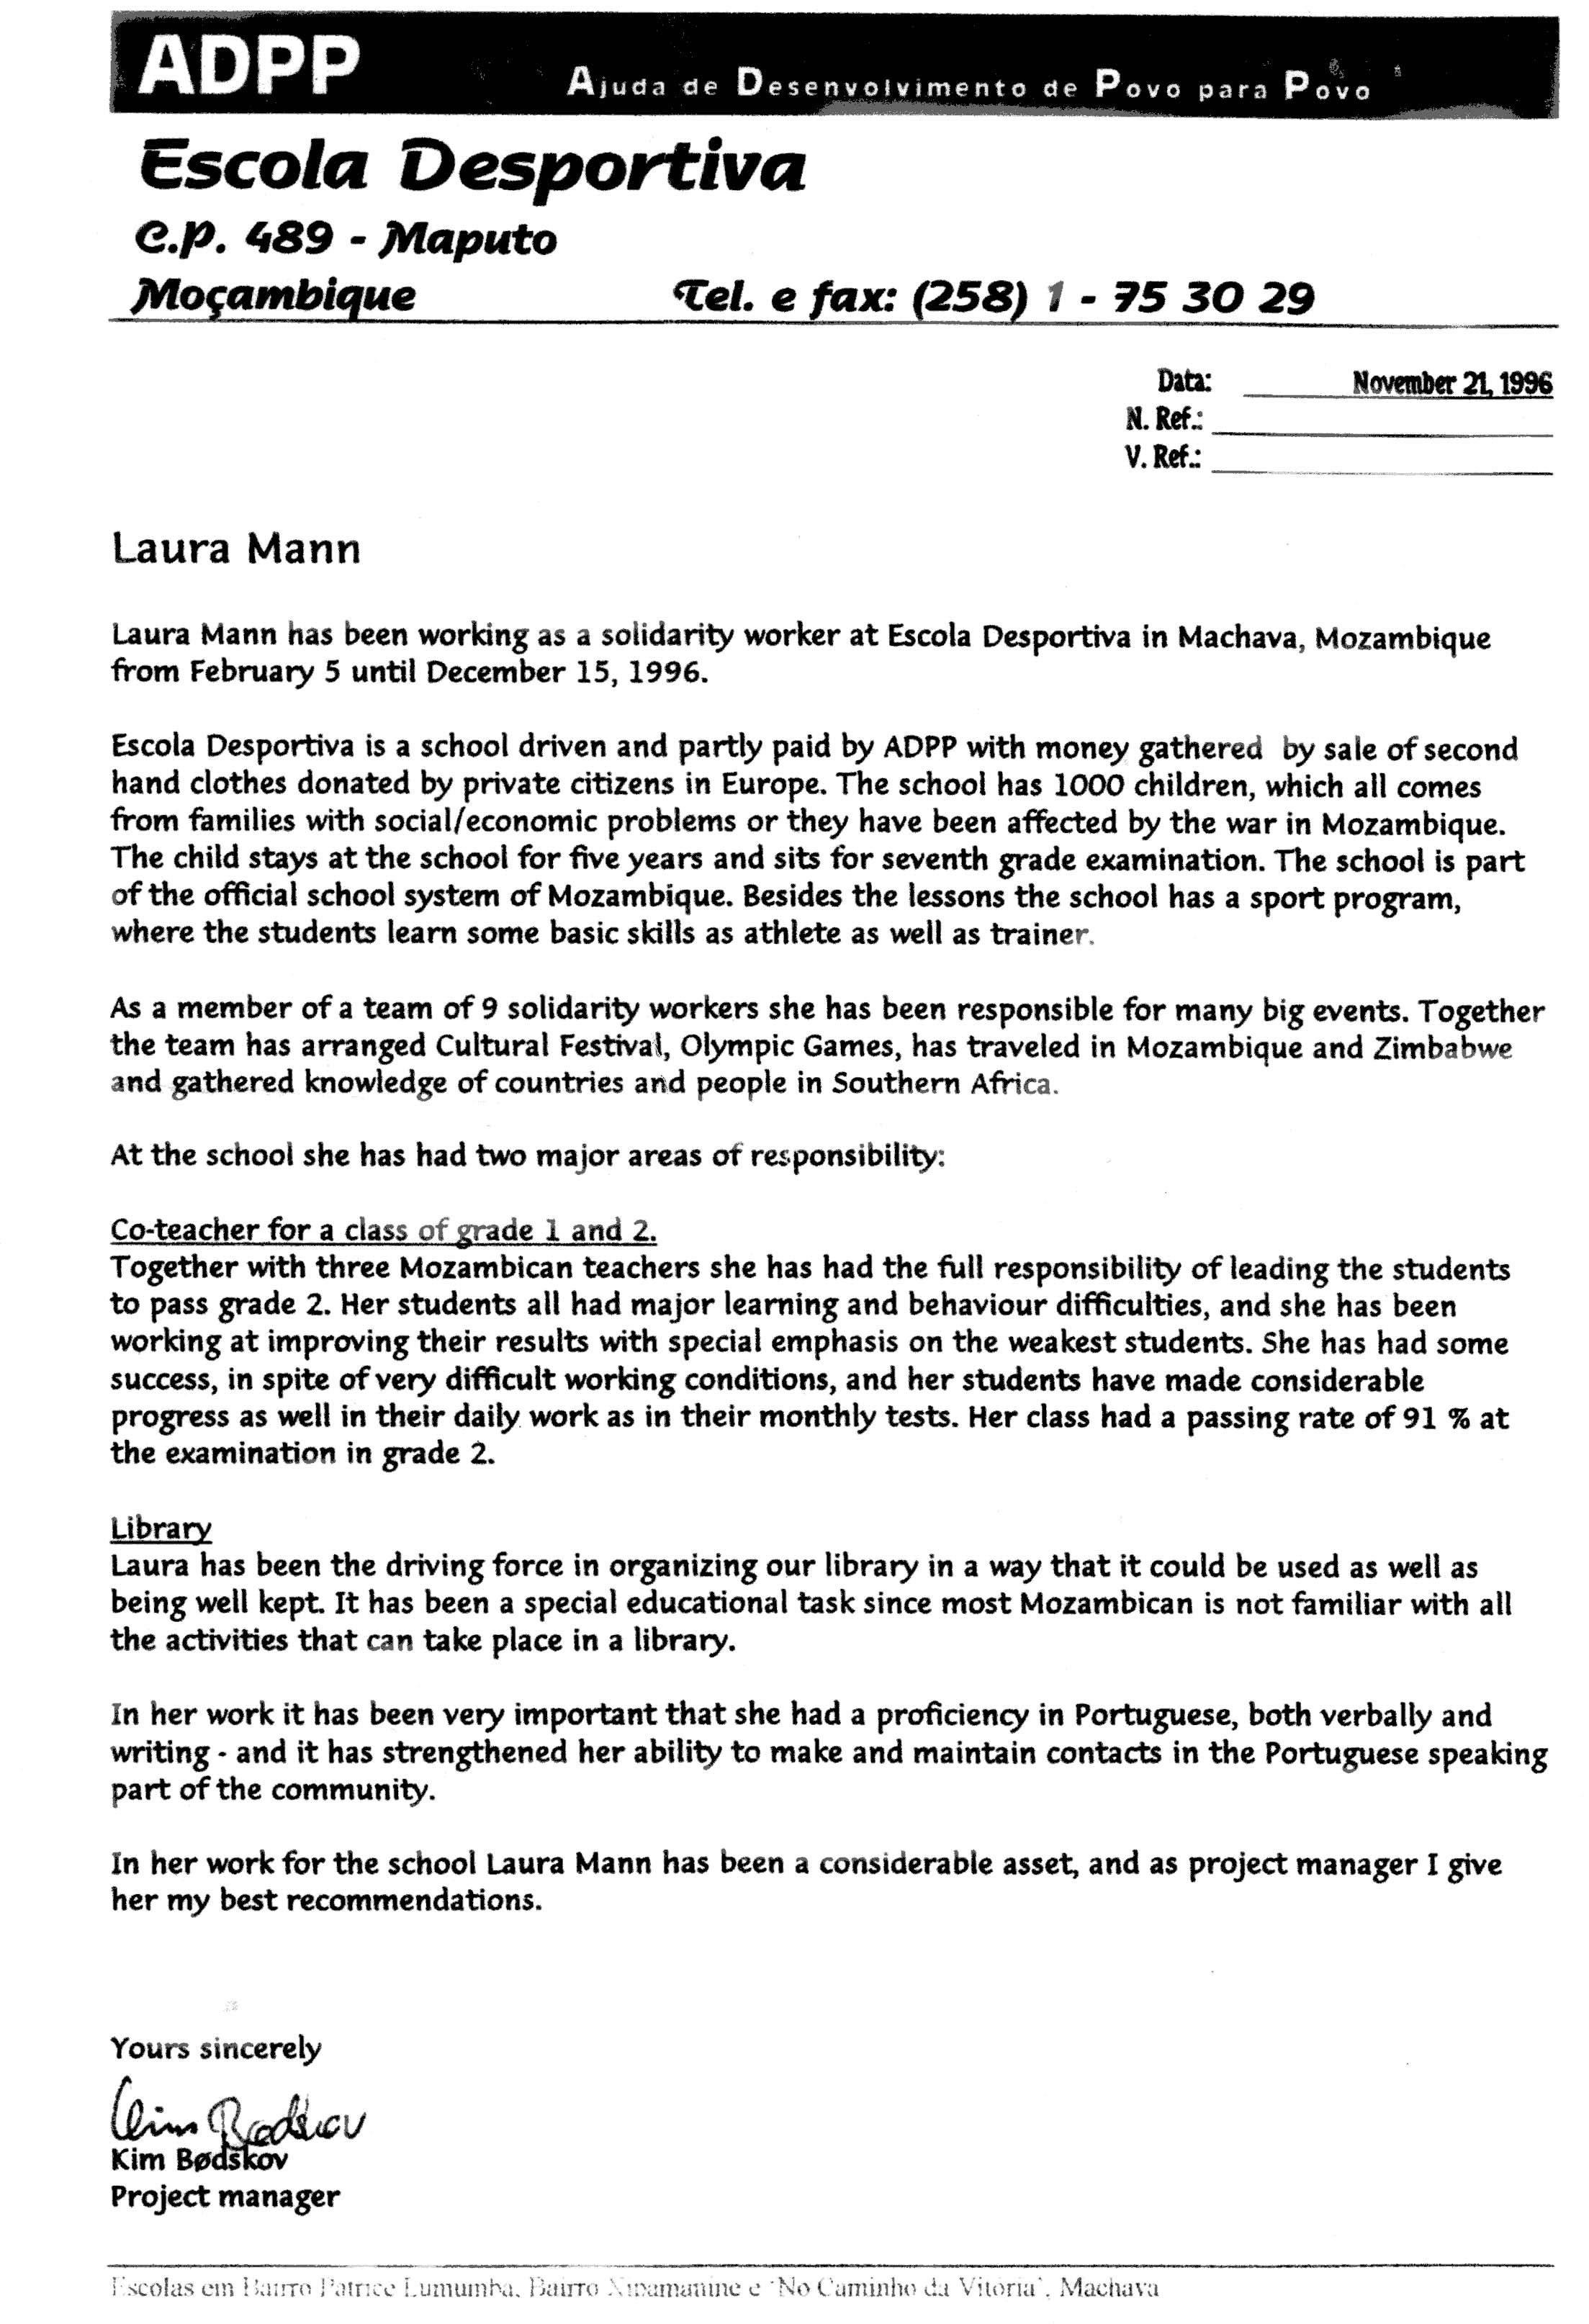 Preschool Welcome Letter Template - Letter for Volunteer Teachervolunteer Letter Template Application